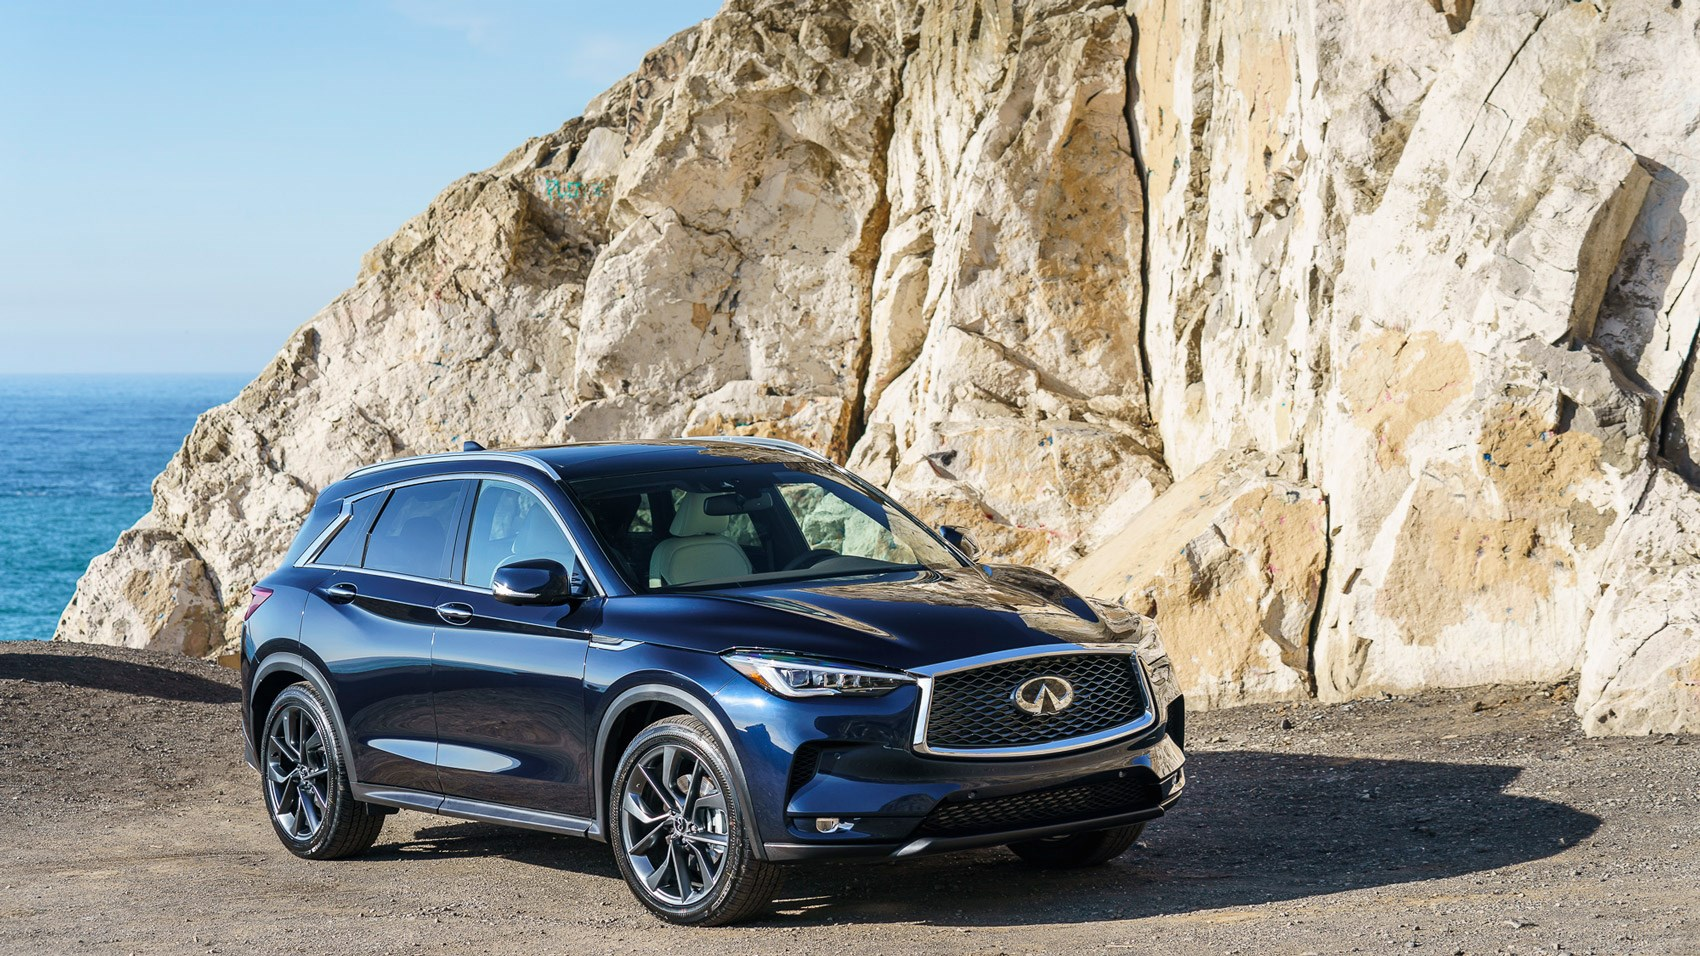 Infiniti QX50 review: the best car Infiniti has made so ...